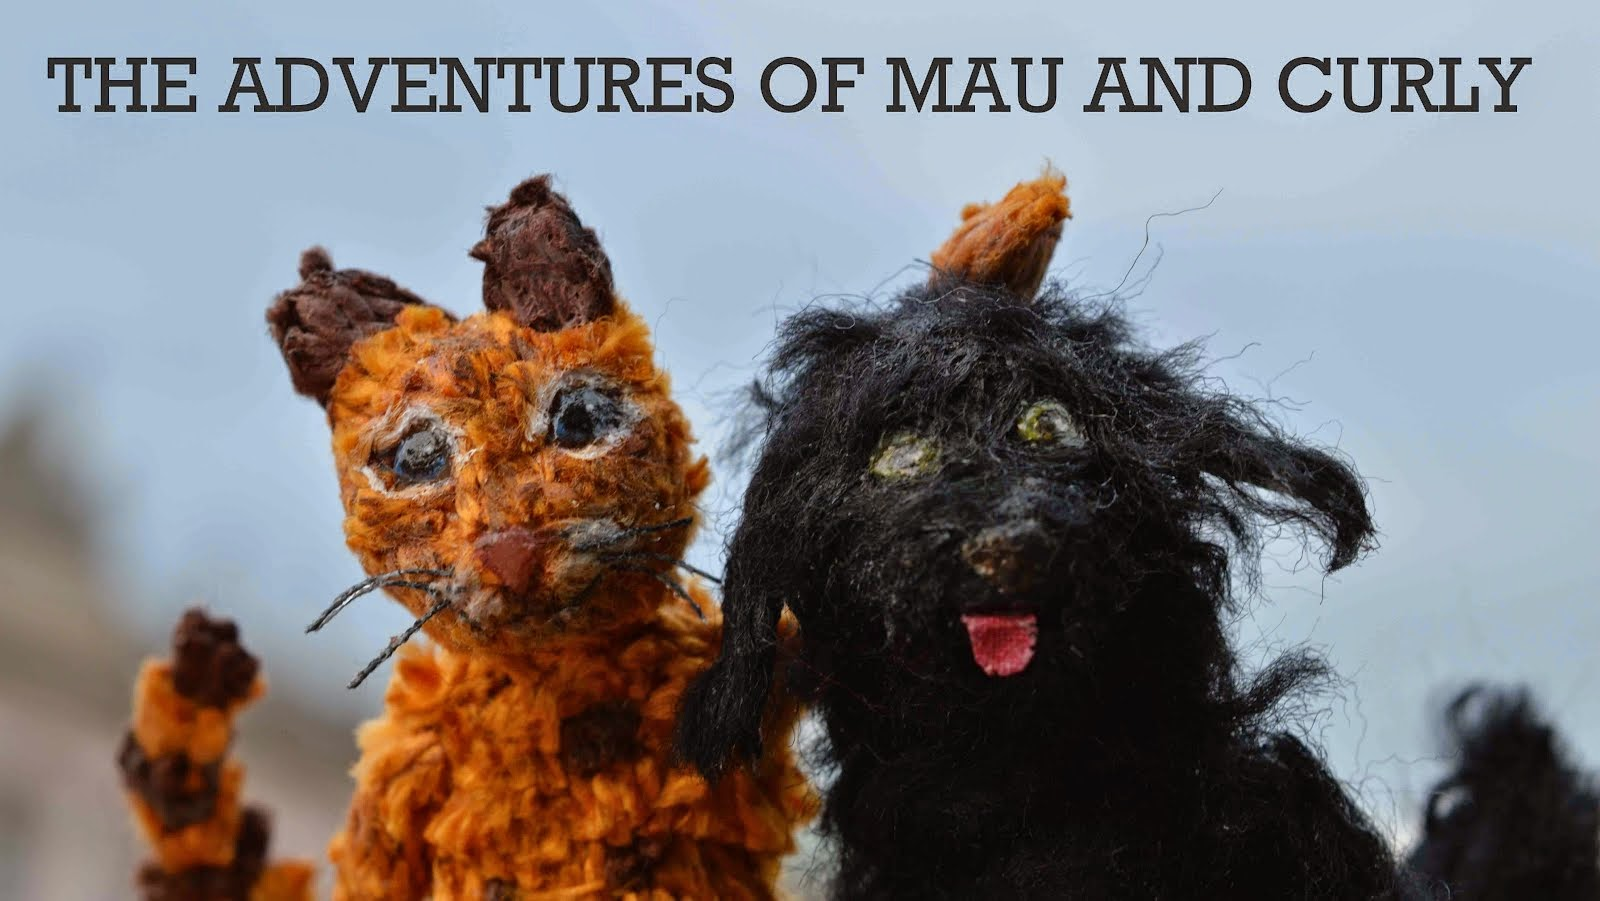 The Adventures of Mau & Curly